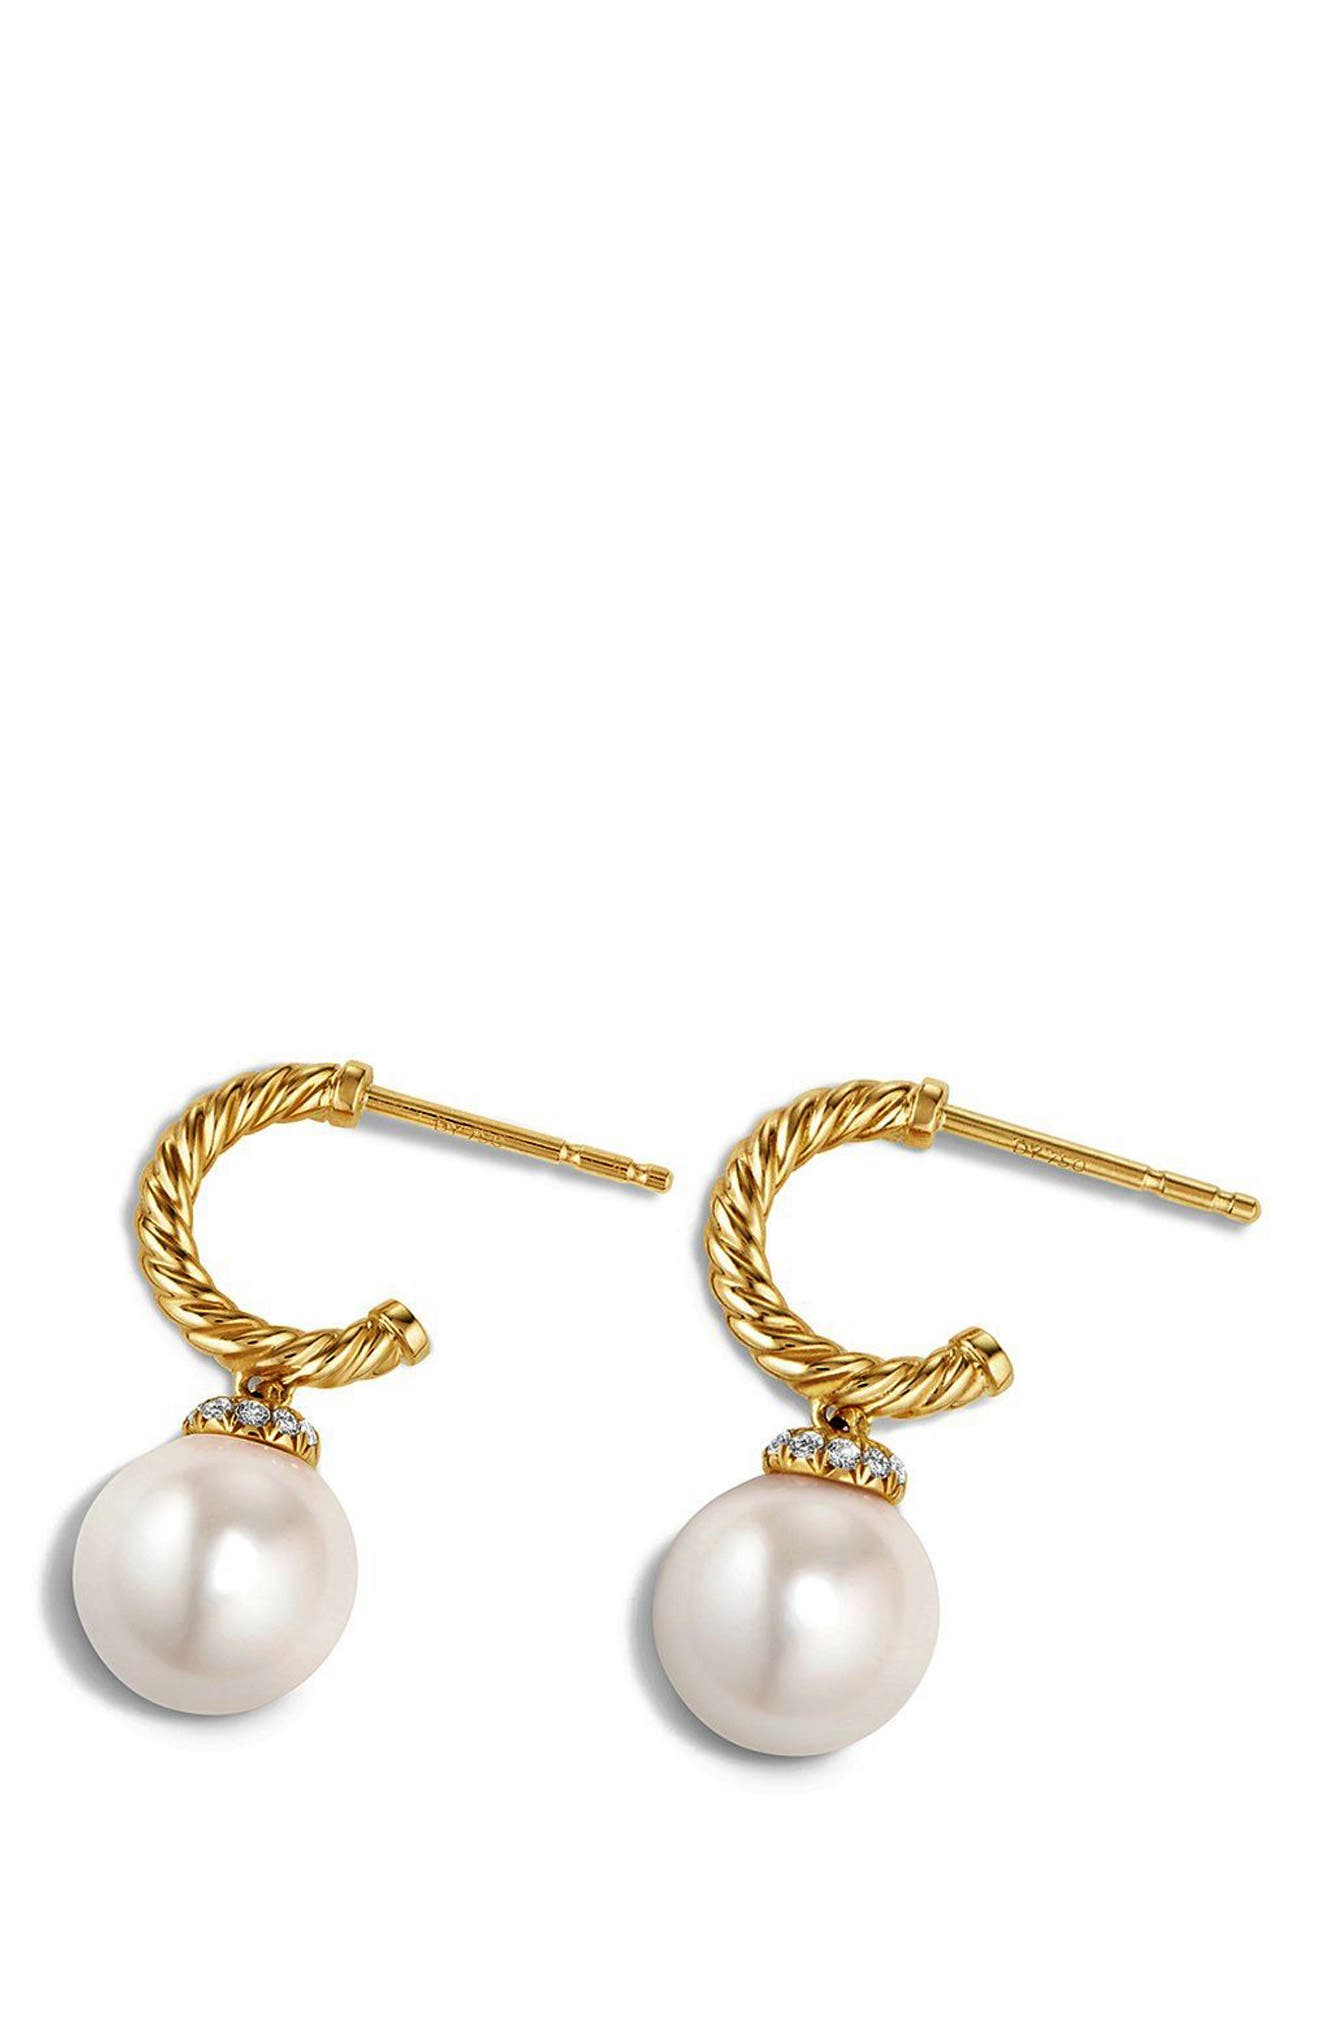 'Solari' Hoop Earring with Diamonds and Pearls in 18K Gold,                             Alternate thumbnail 3, color,                             PEARL